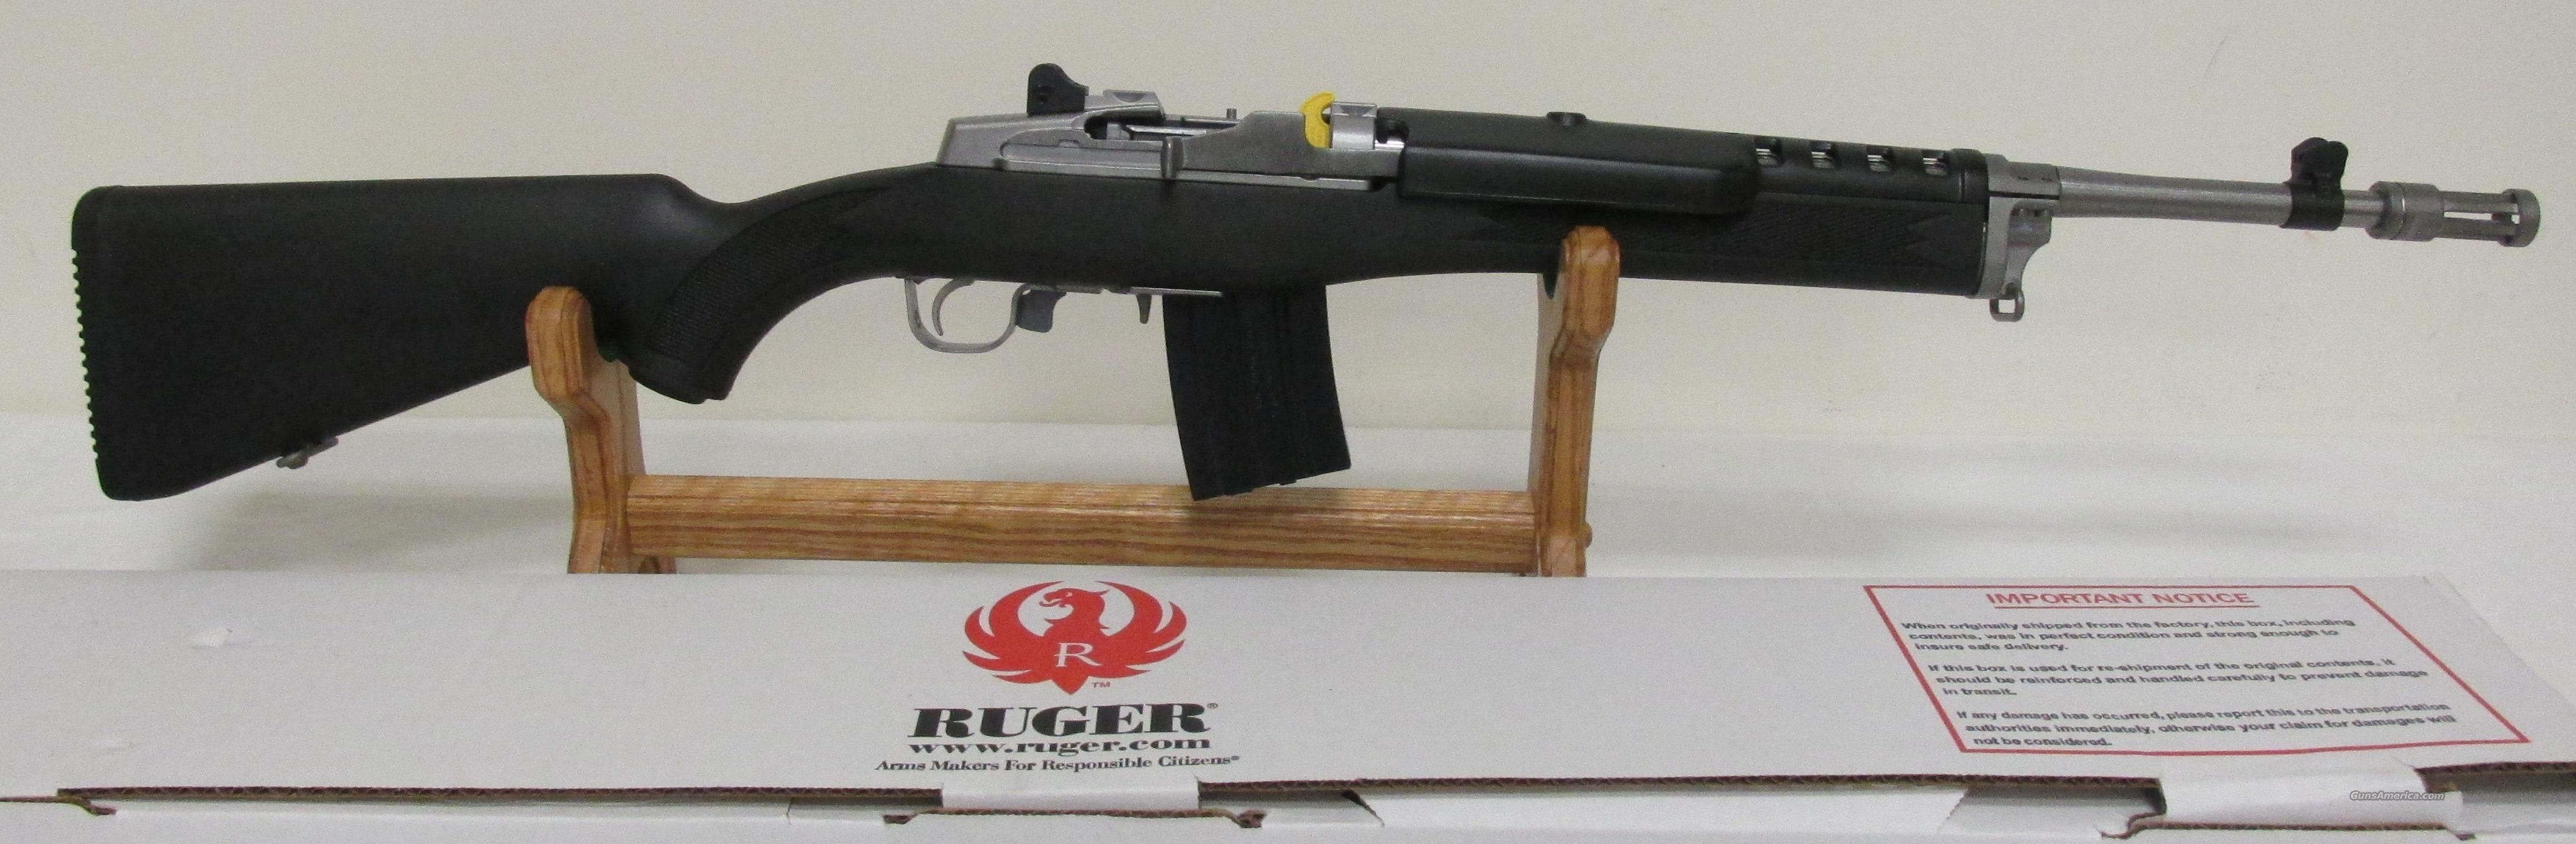 Ruger Mini 14 5819 SS with Flash Suppressor NIB  Guns > Rifles > Ruger Rifles > Mini-14 Type